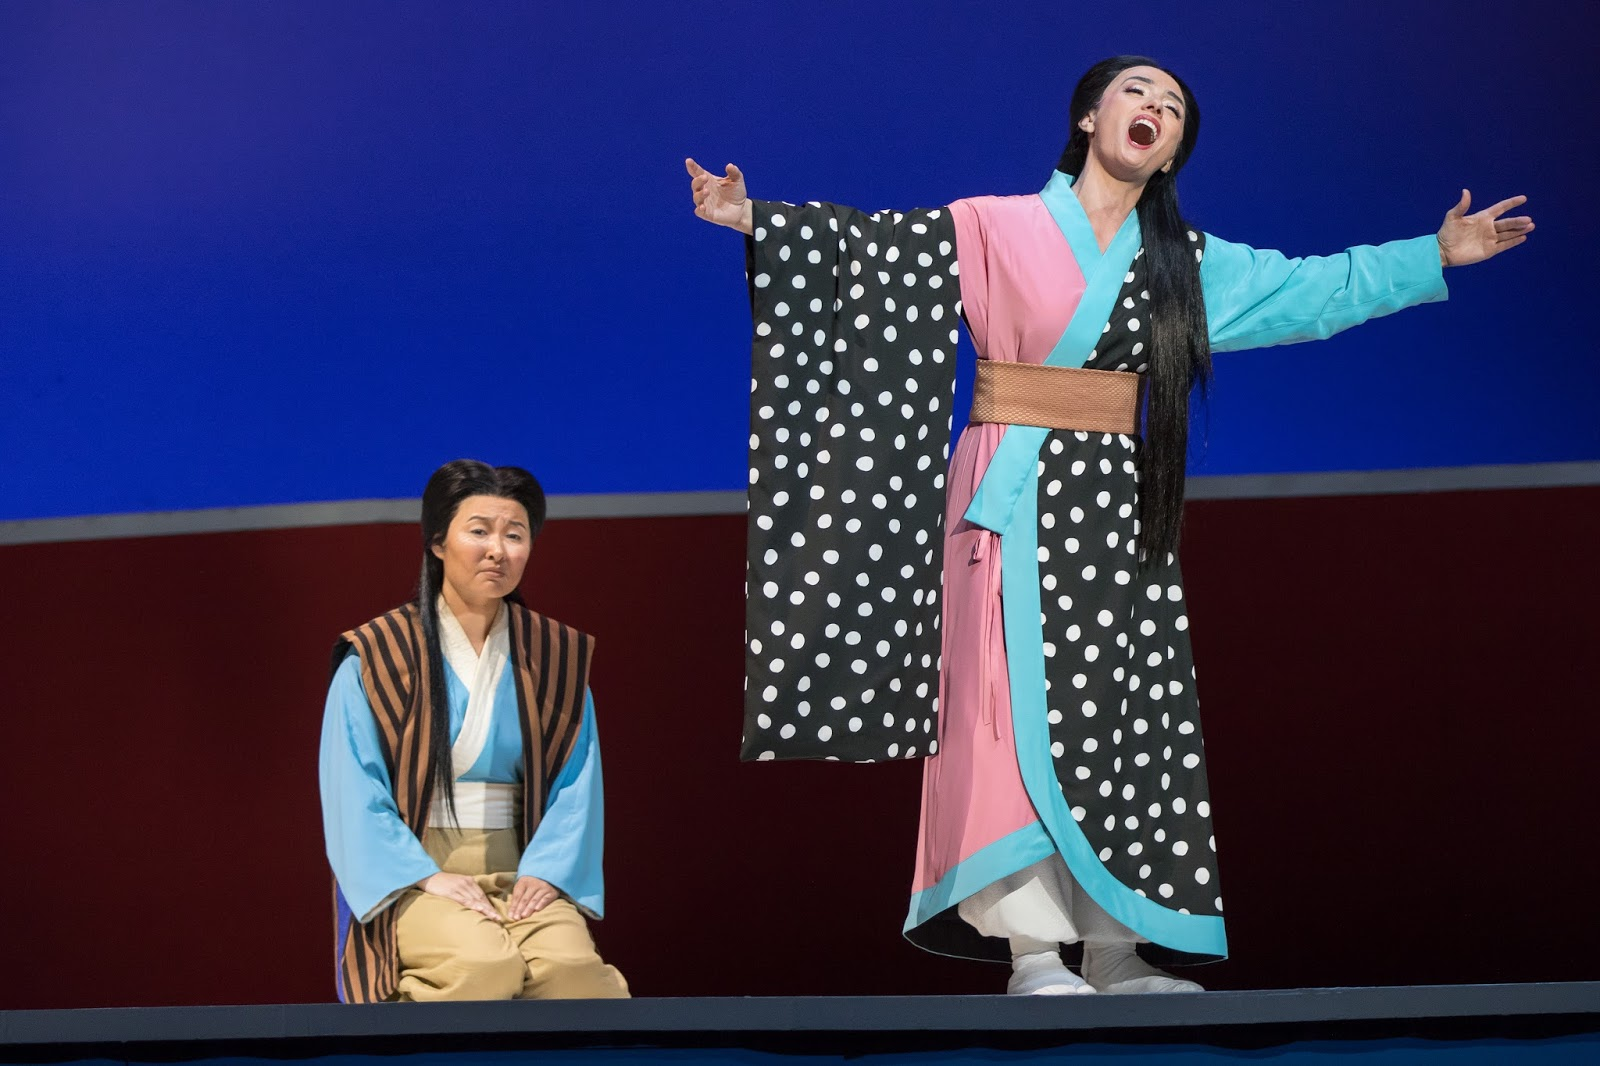 IN REVIEW: Mezzo-soprano KRISTEN CHOI as Suzuki (left) and soprano ERMONELA JAHO as Cio-Cio-San (right) in Washington National Opera's production of Giacomo Puccini's MADAMA BUTTERFLY, May 2017 [Photo by Scott Suchman, © by Washington National Opera]